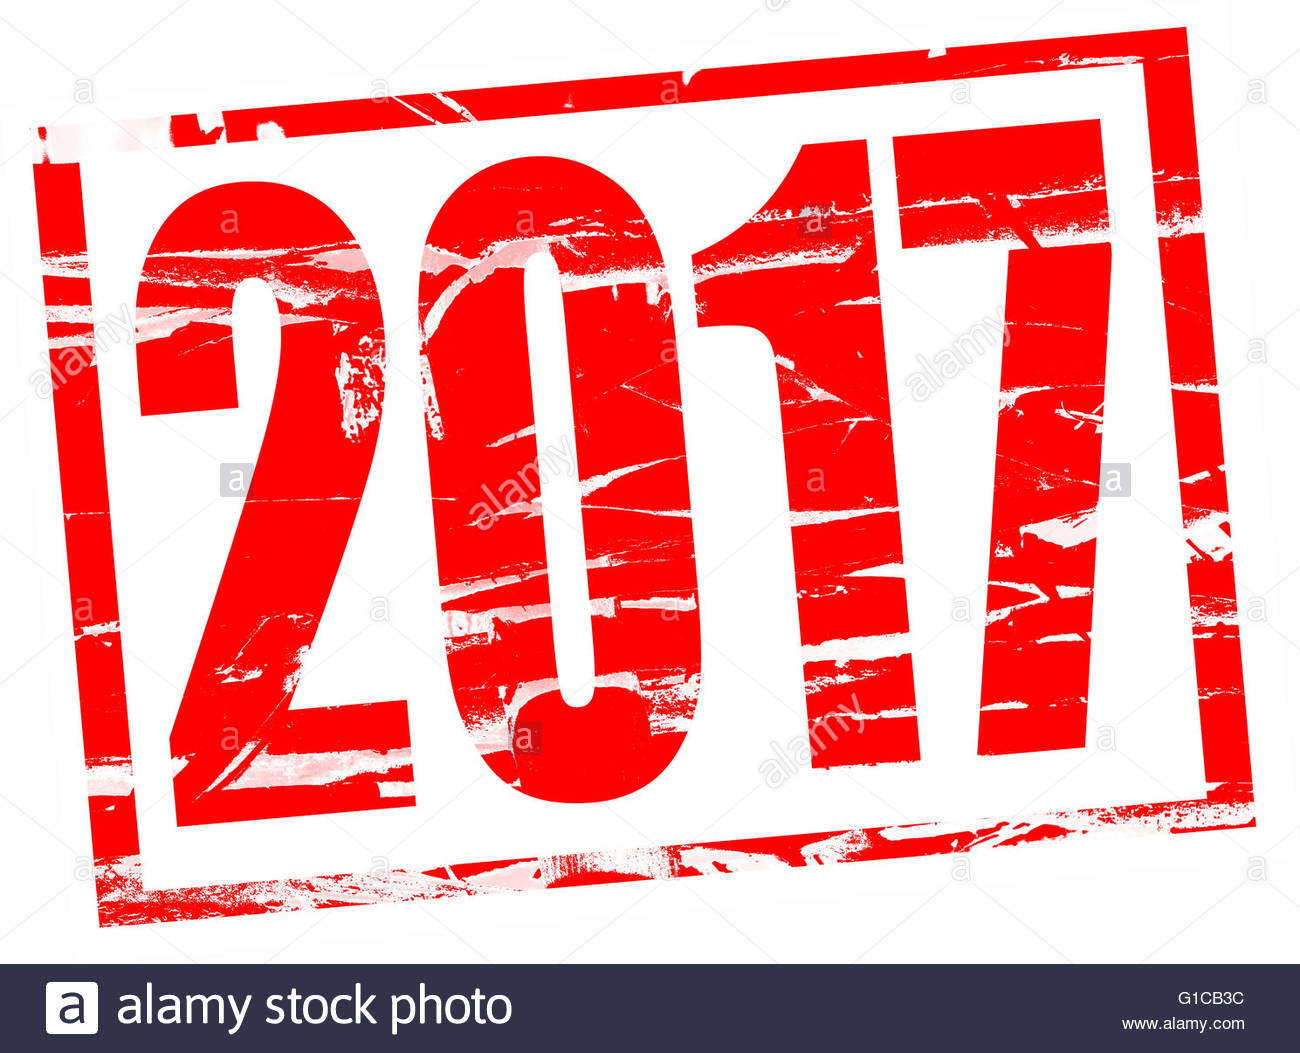 Red rubber stamp effect - 2017 - Stock Image